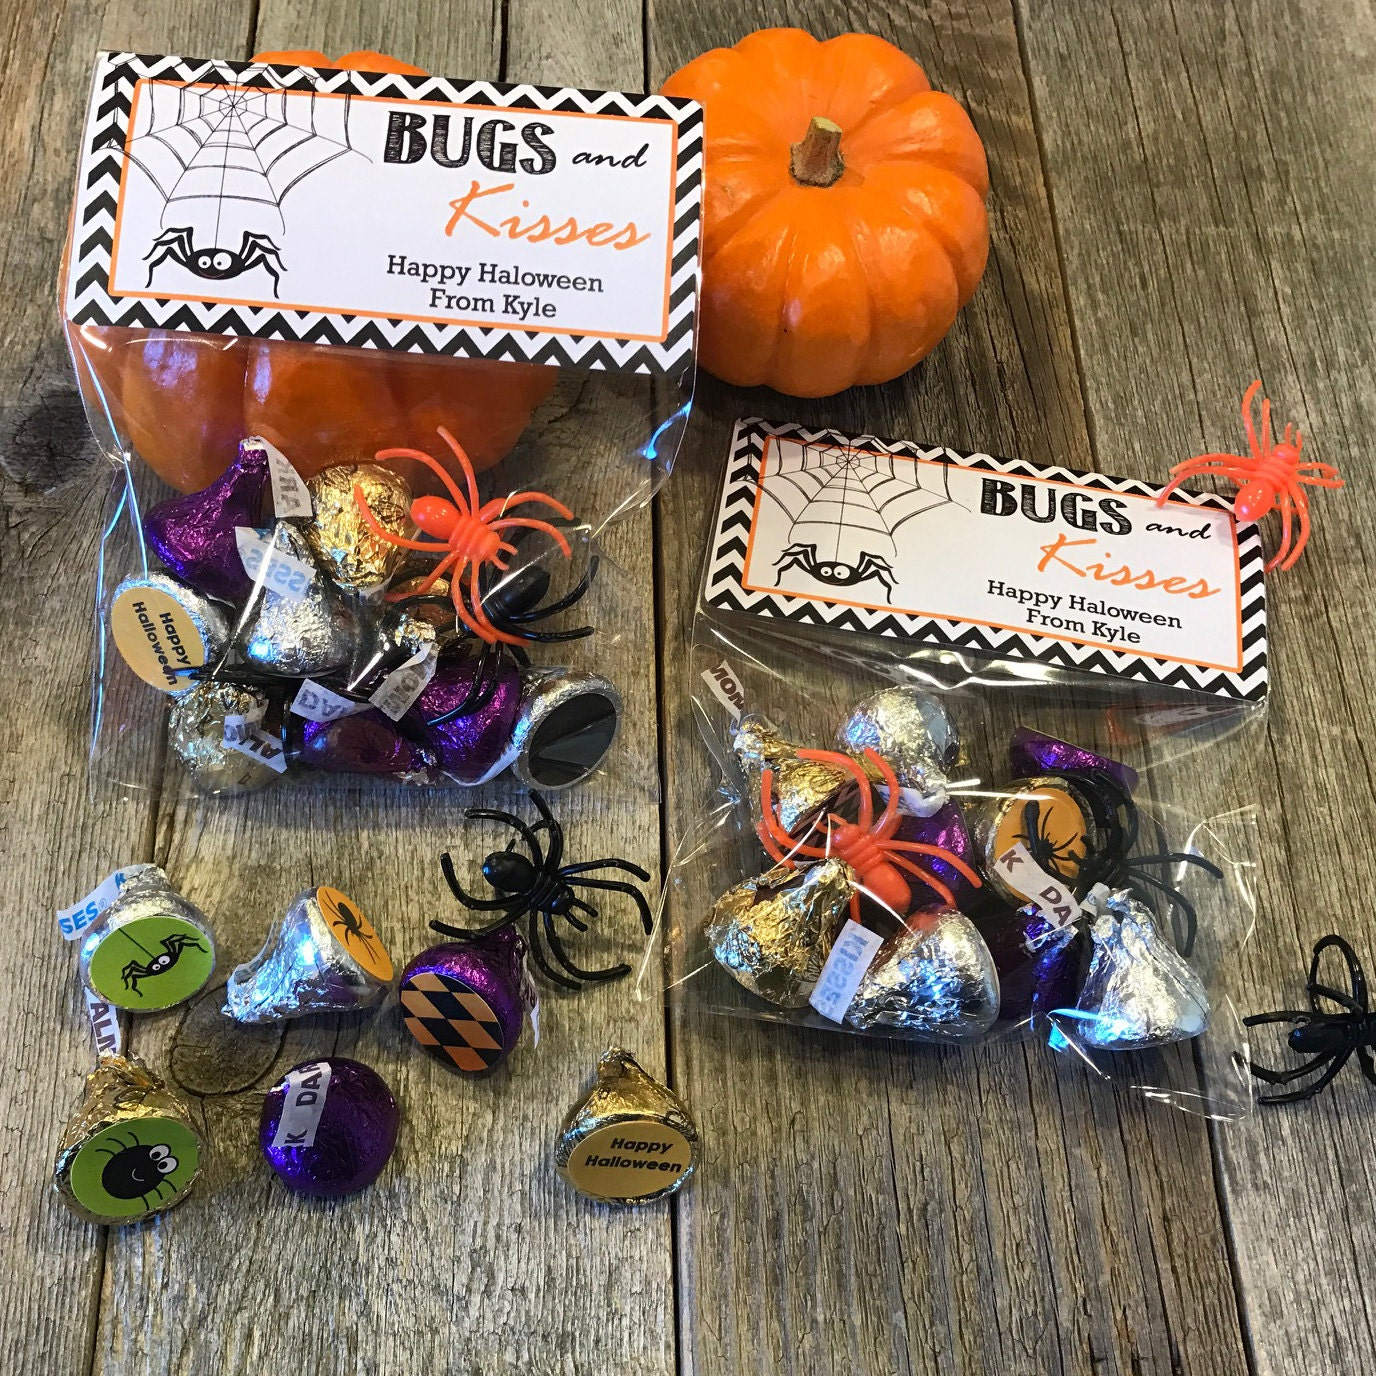 bugs and kisses halloween party bags halloween party favors | etsy